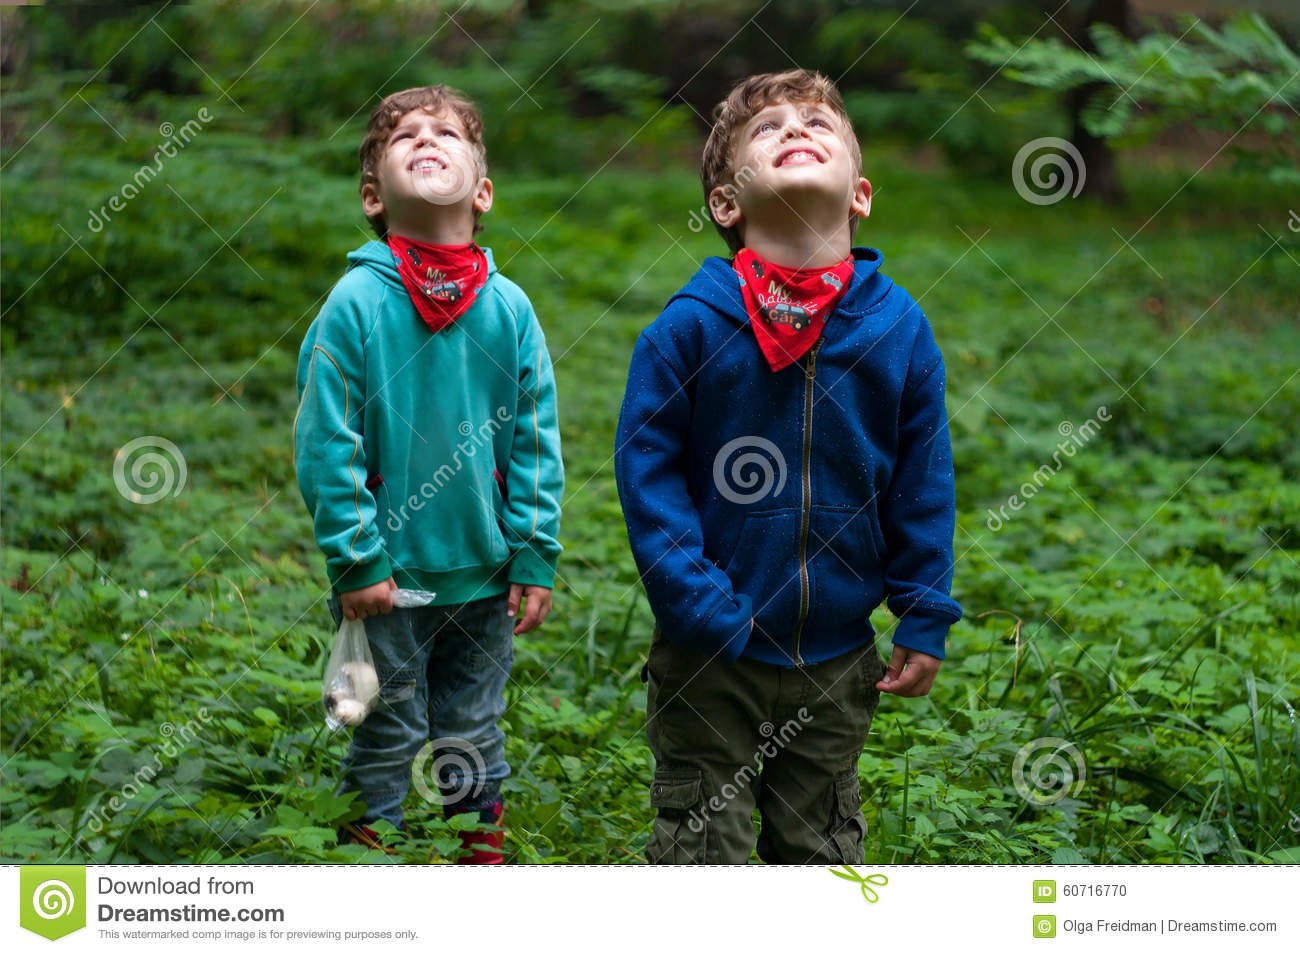 Identical twin brothers look to the sky